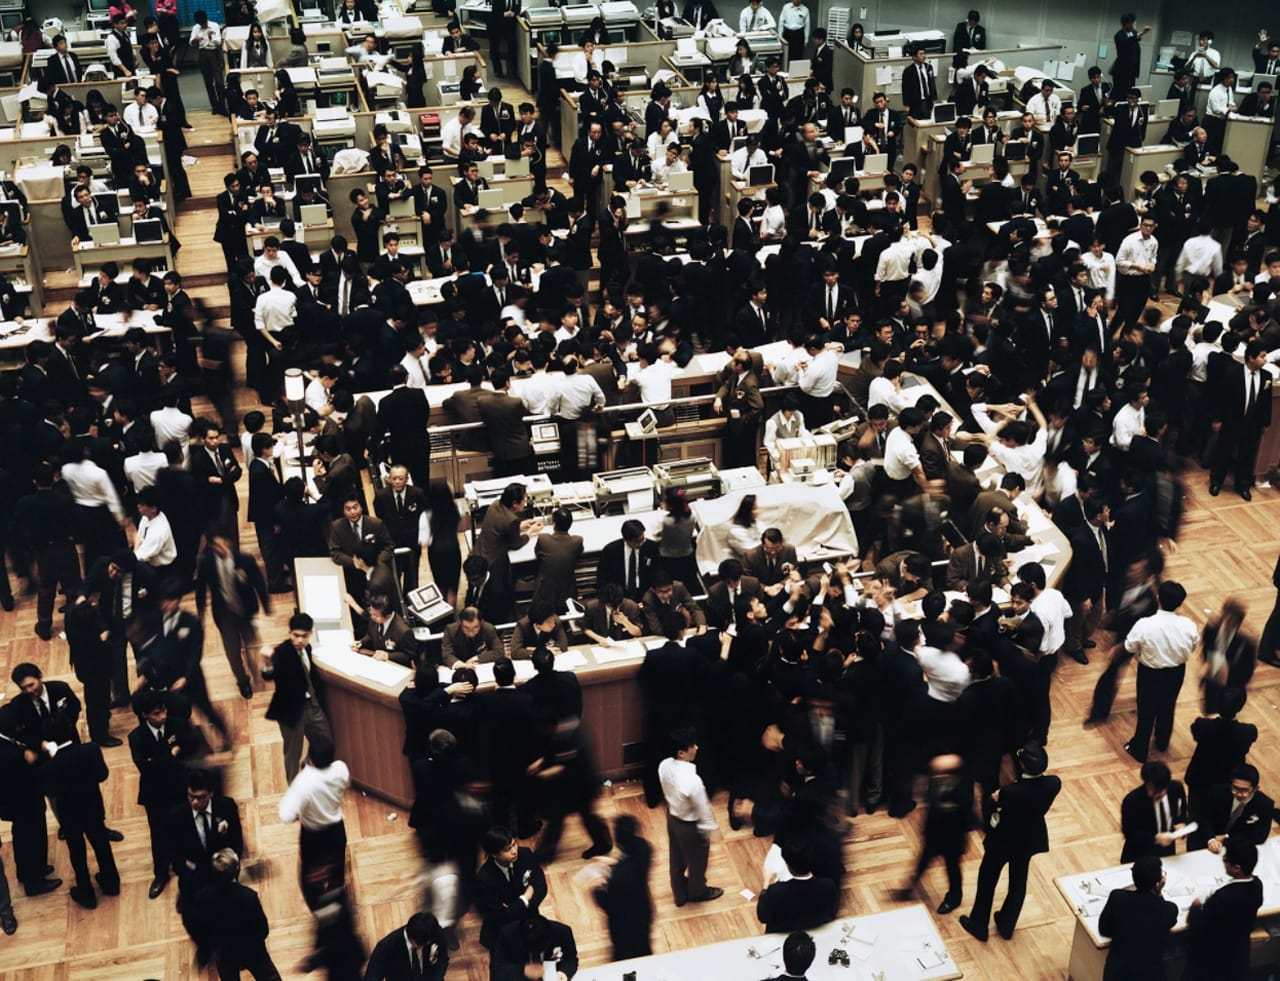 Andreas Gursky, Tokyo Stock Exchange, 1990